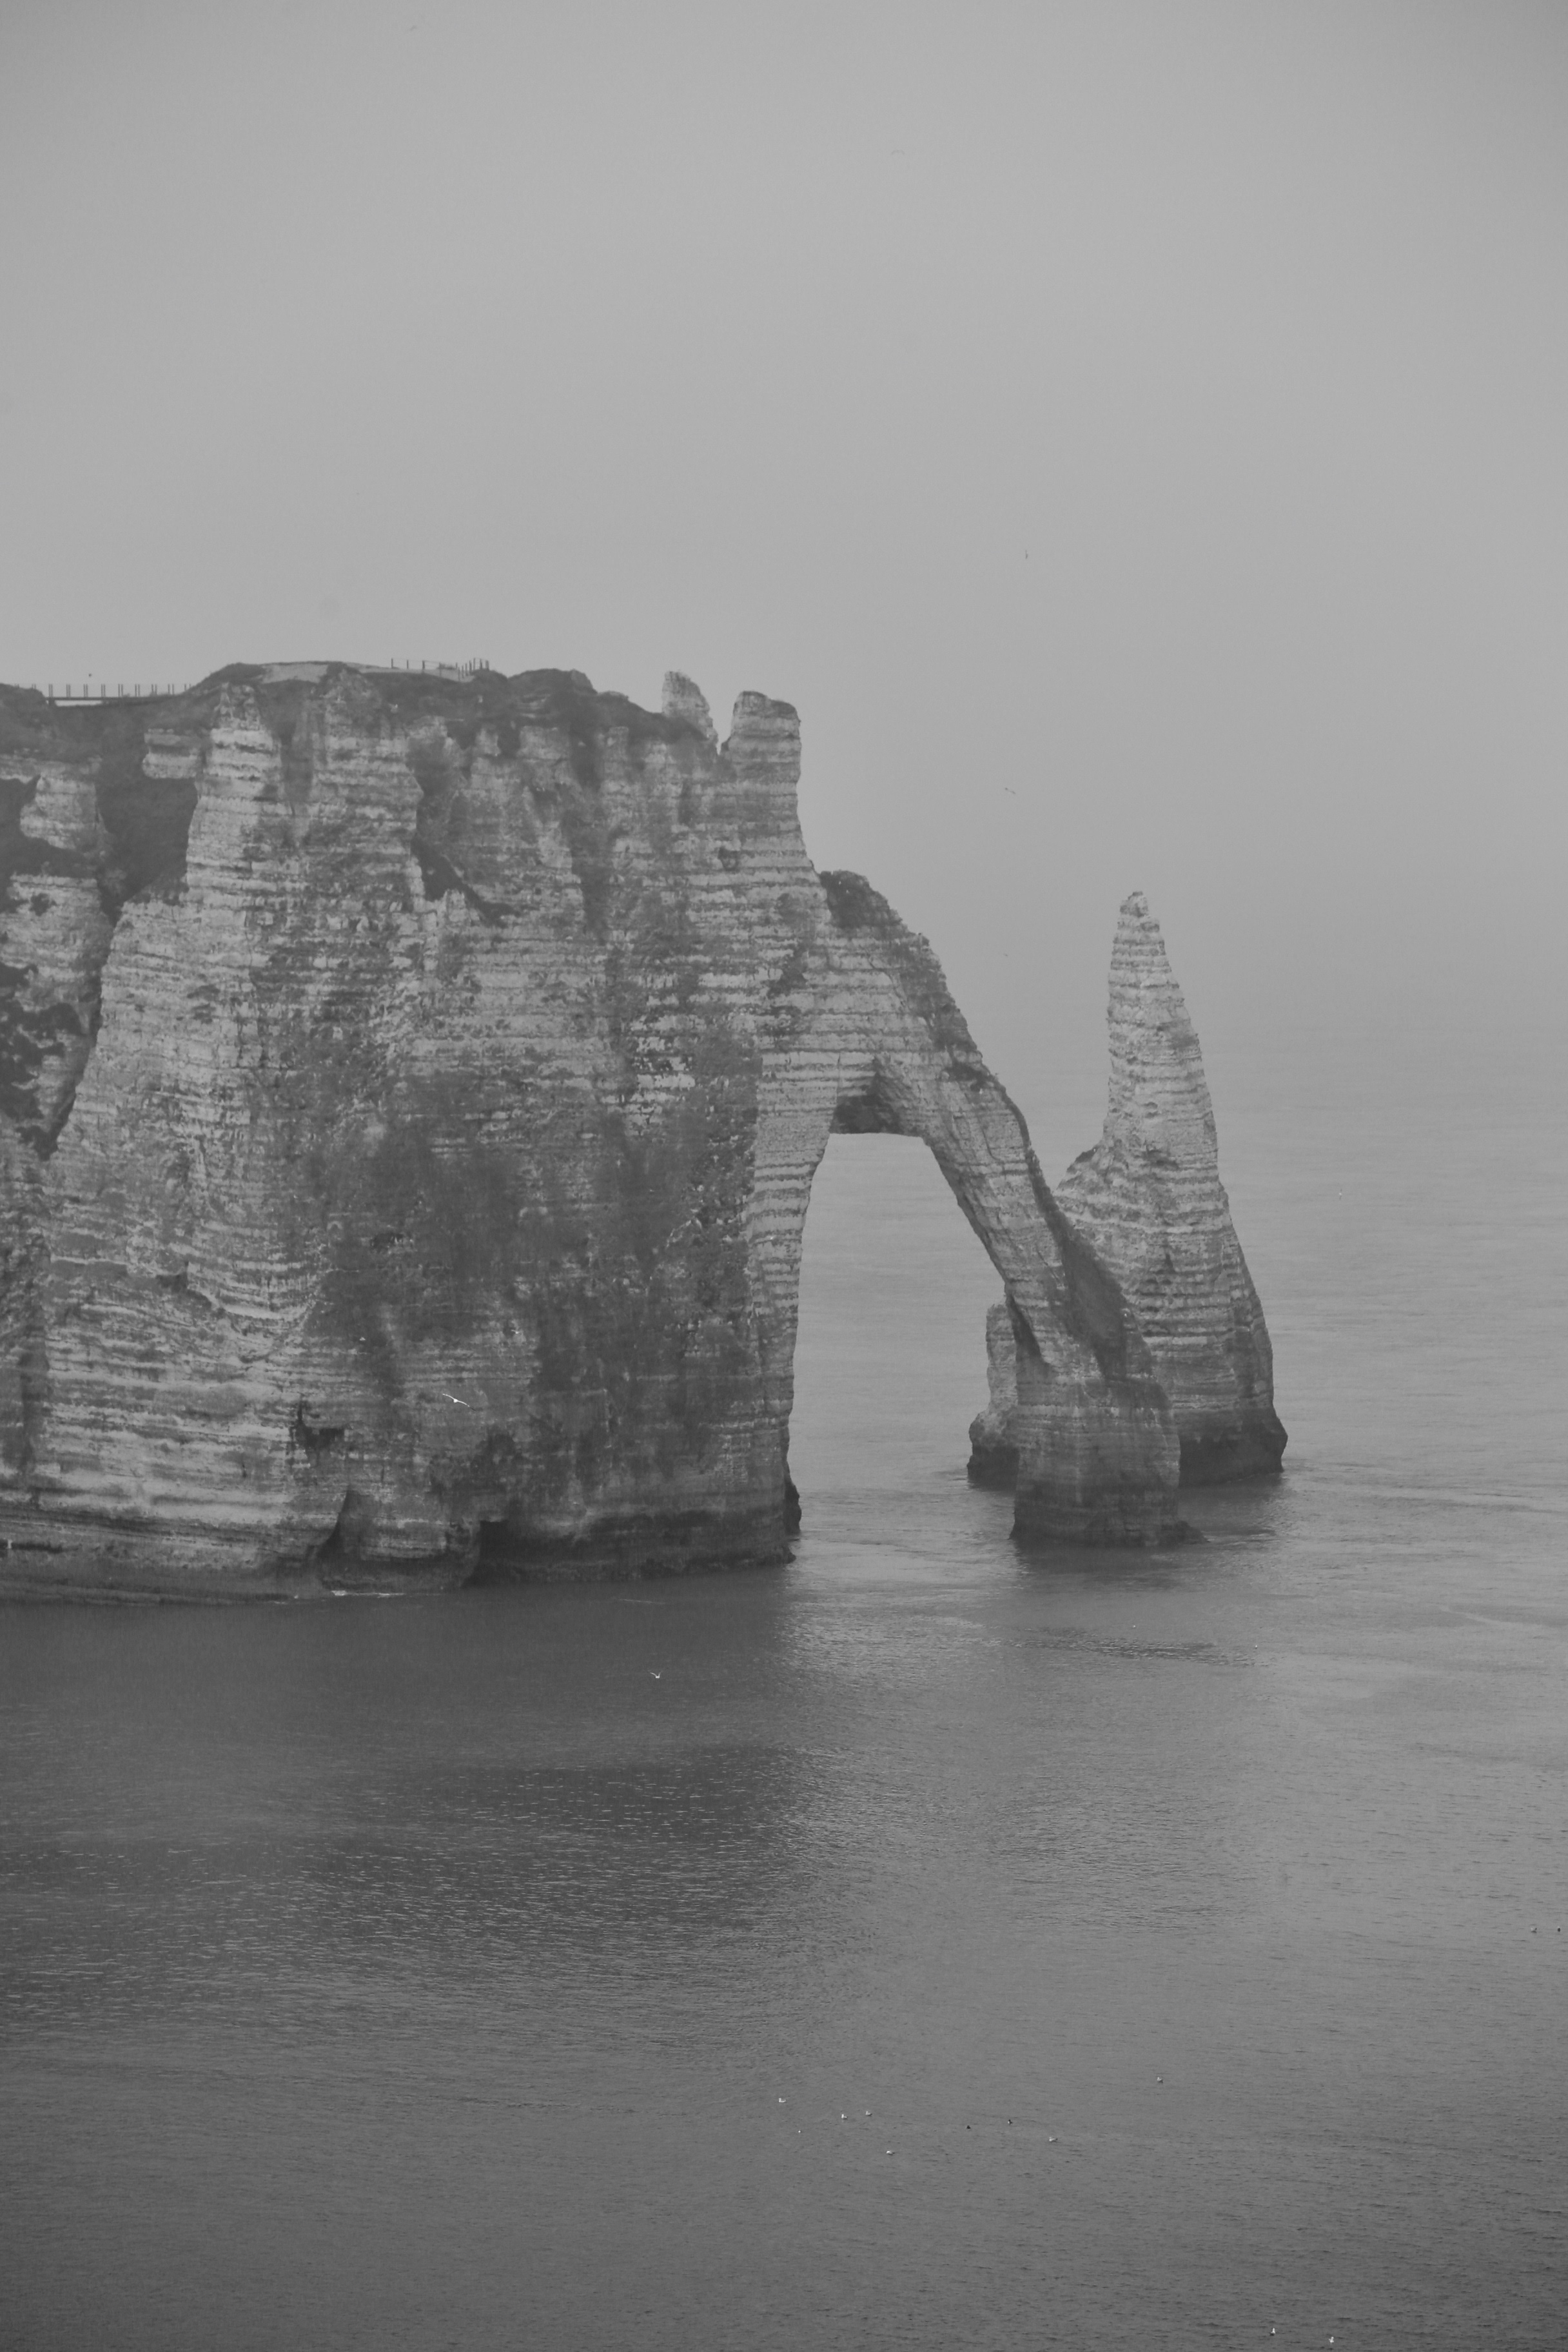 A natural arch in the cliffs by the sea, Etretat, France.